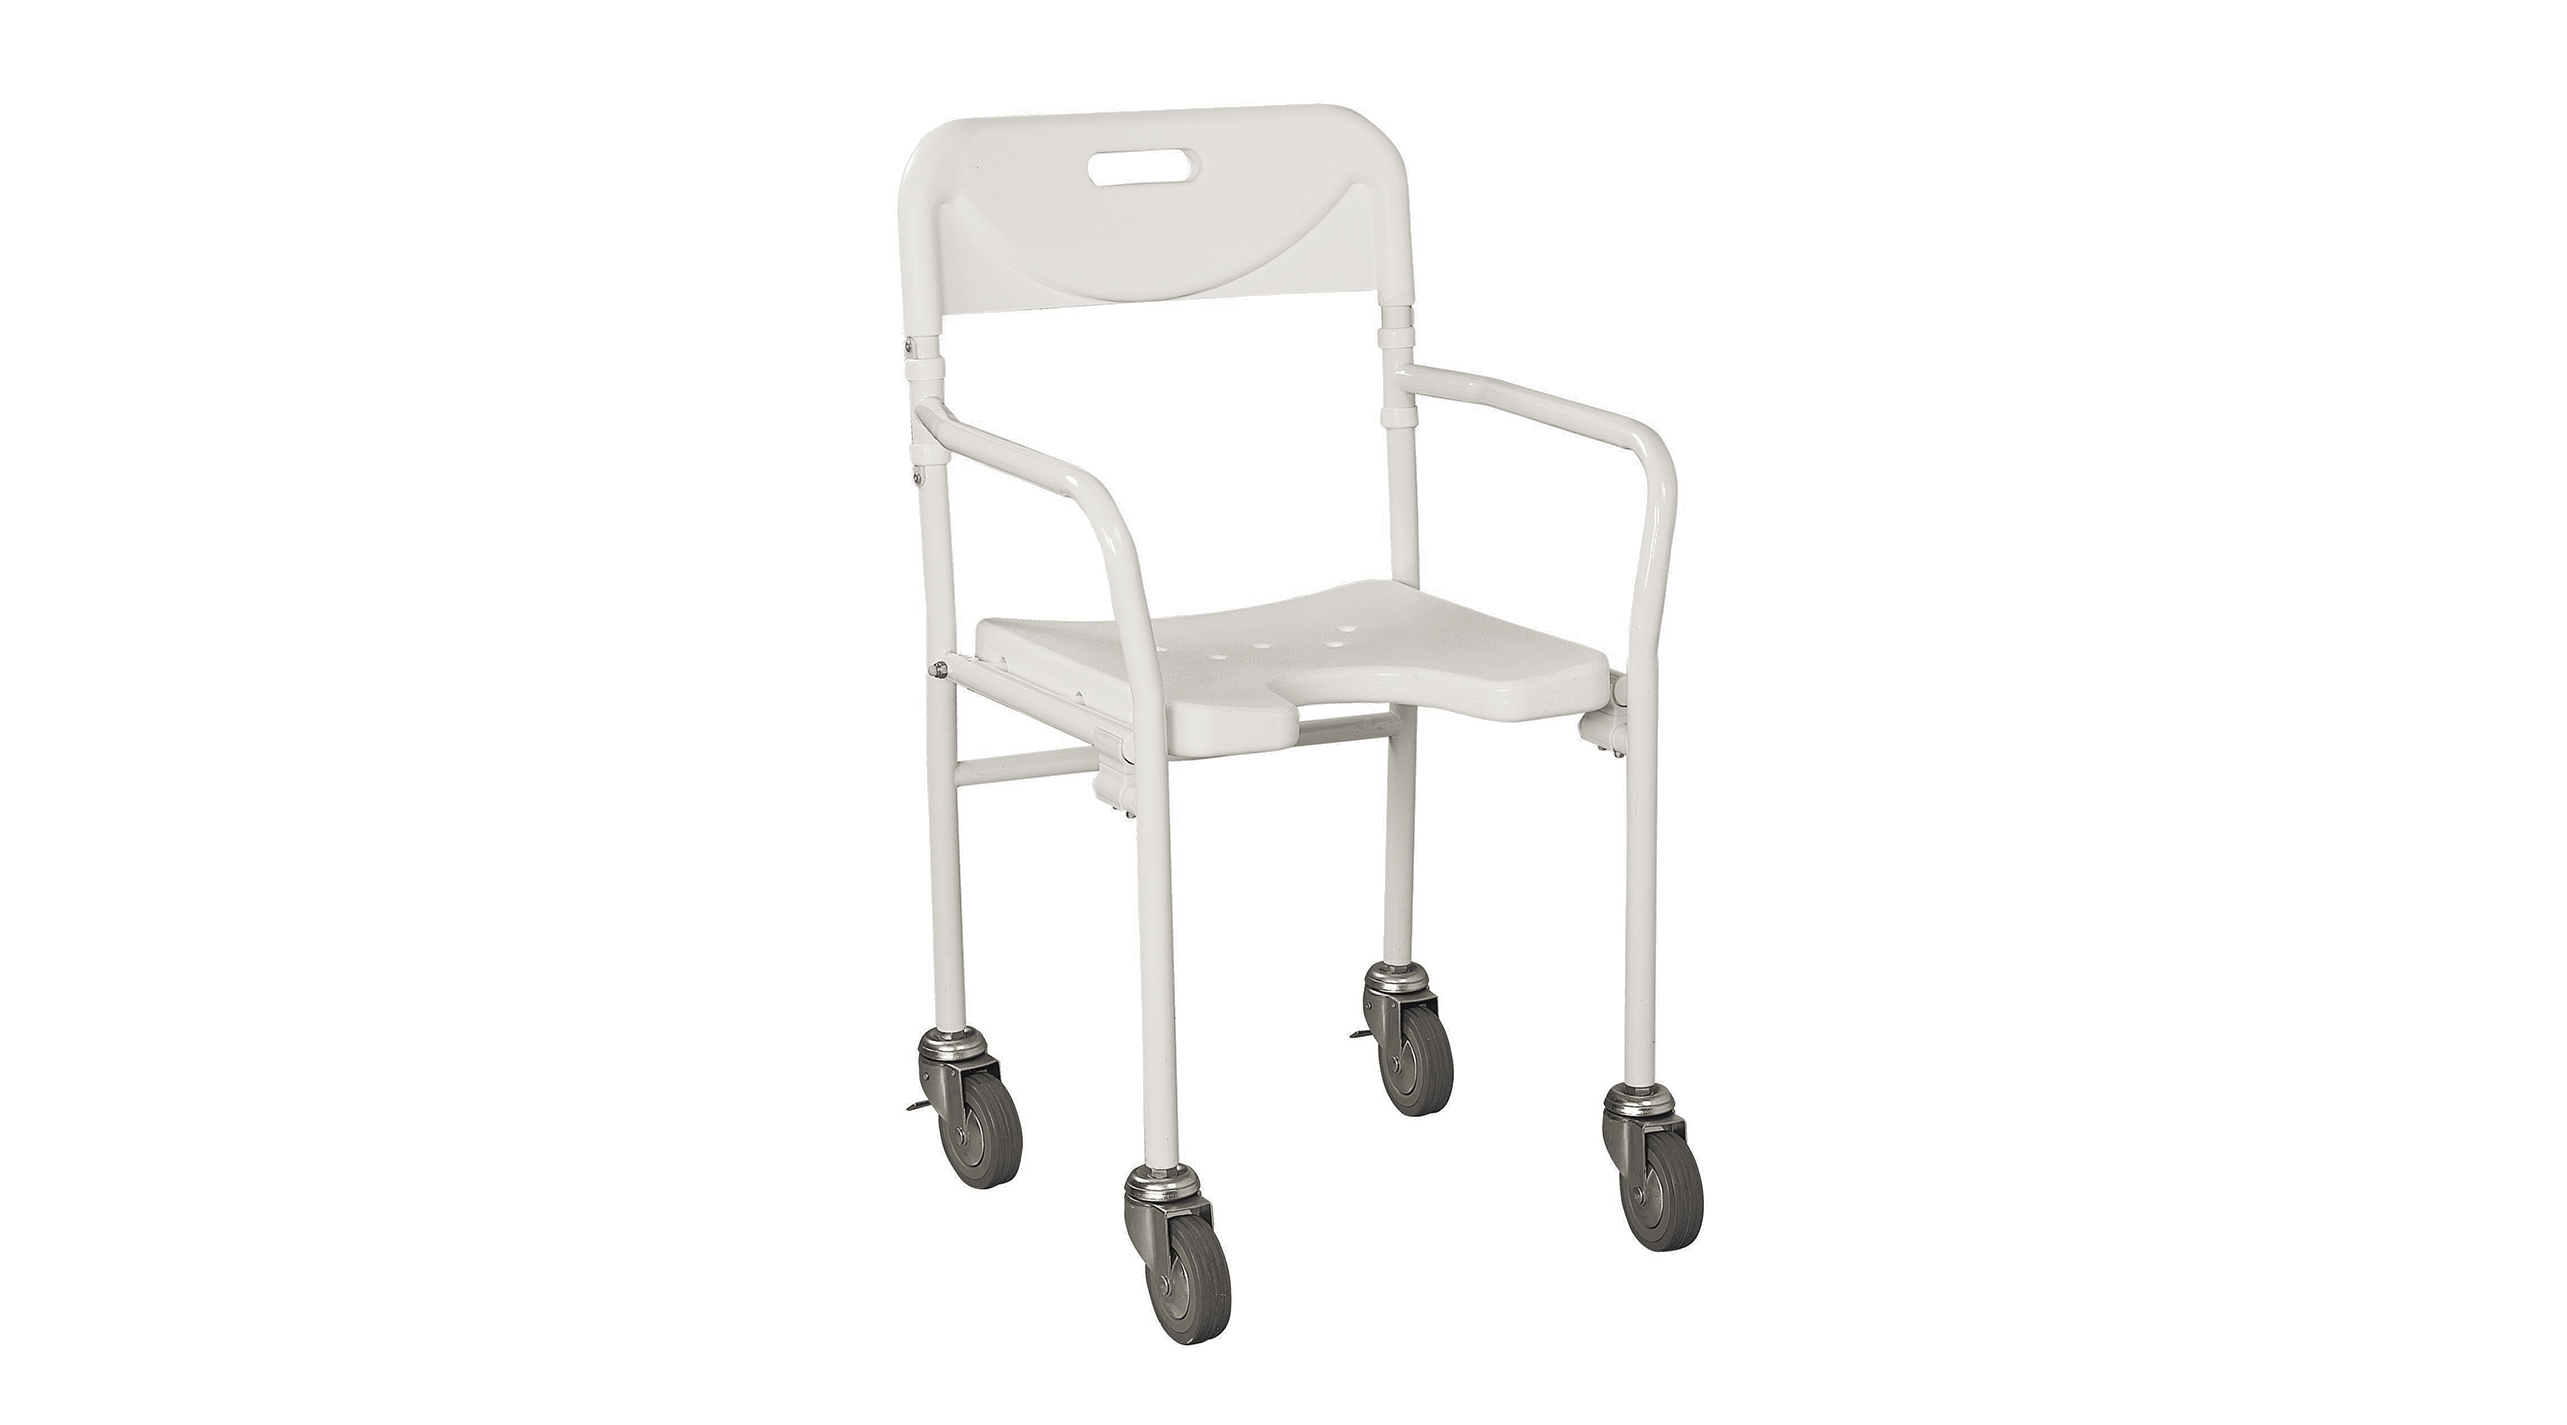 Shower Chairs For Disabled Able Journeys Holidays For Disabled Travellers Adapted